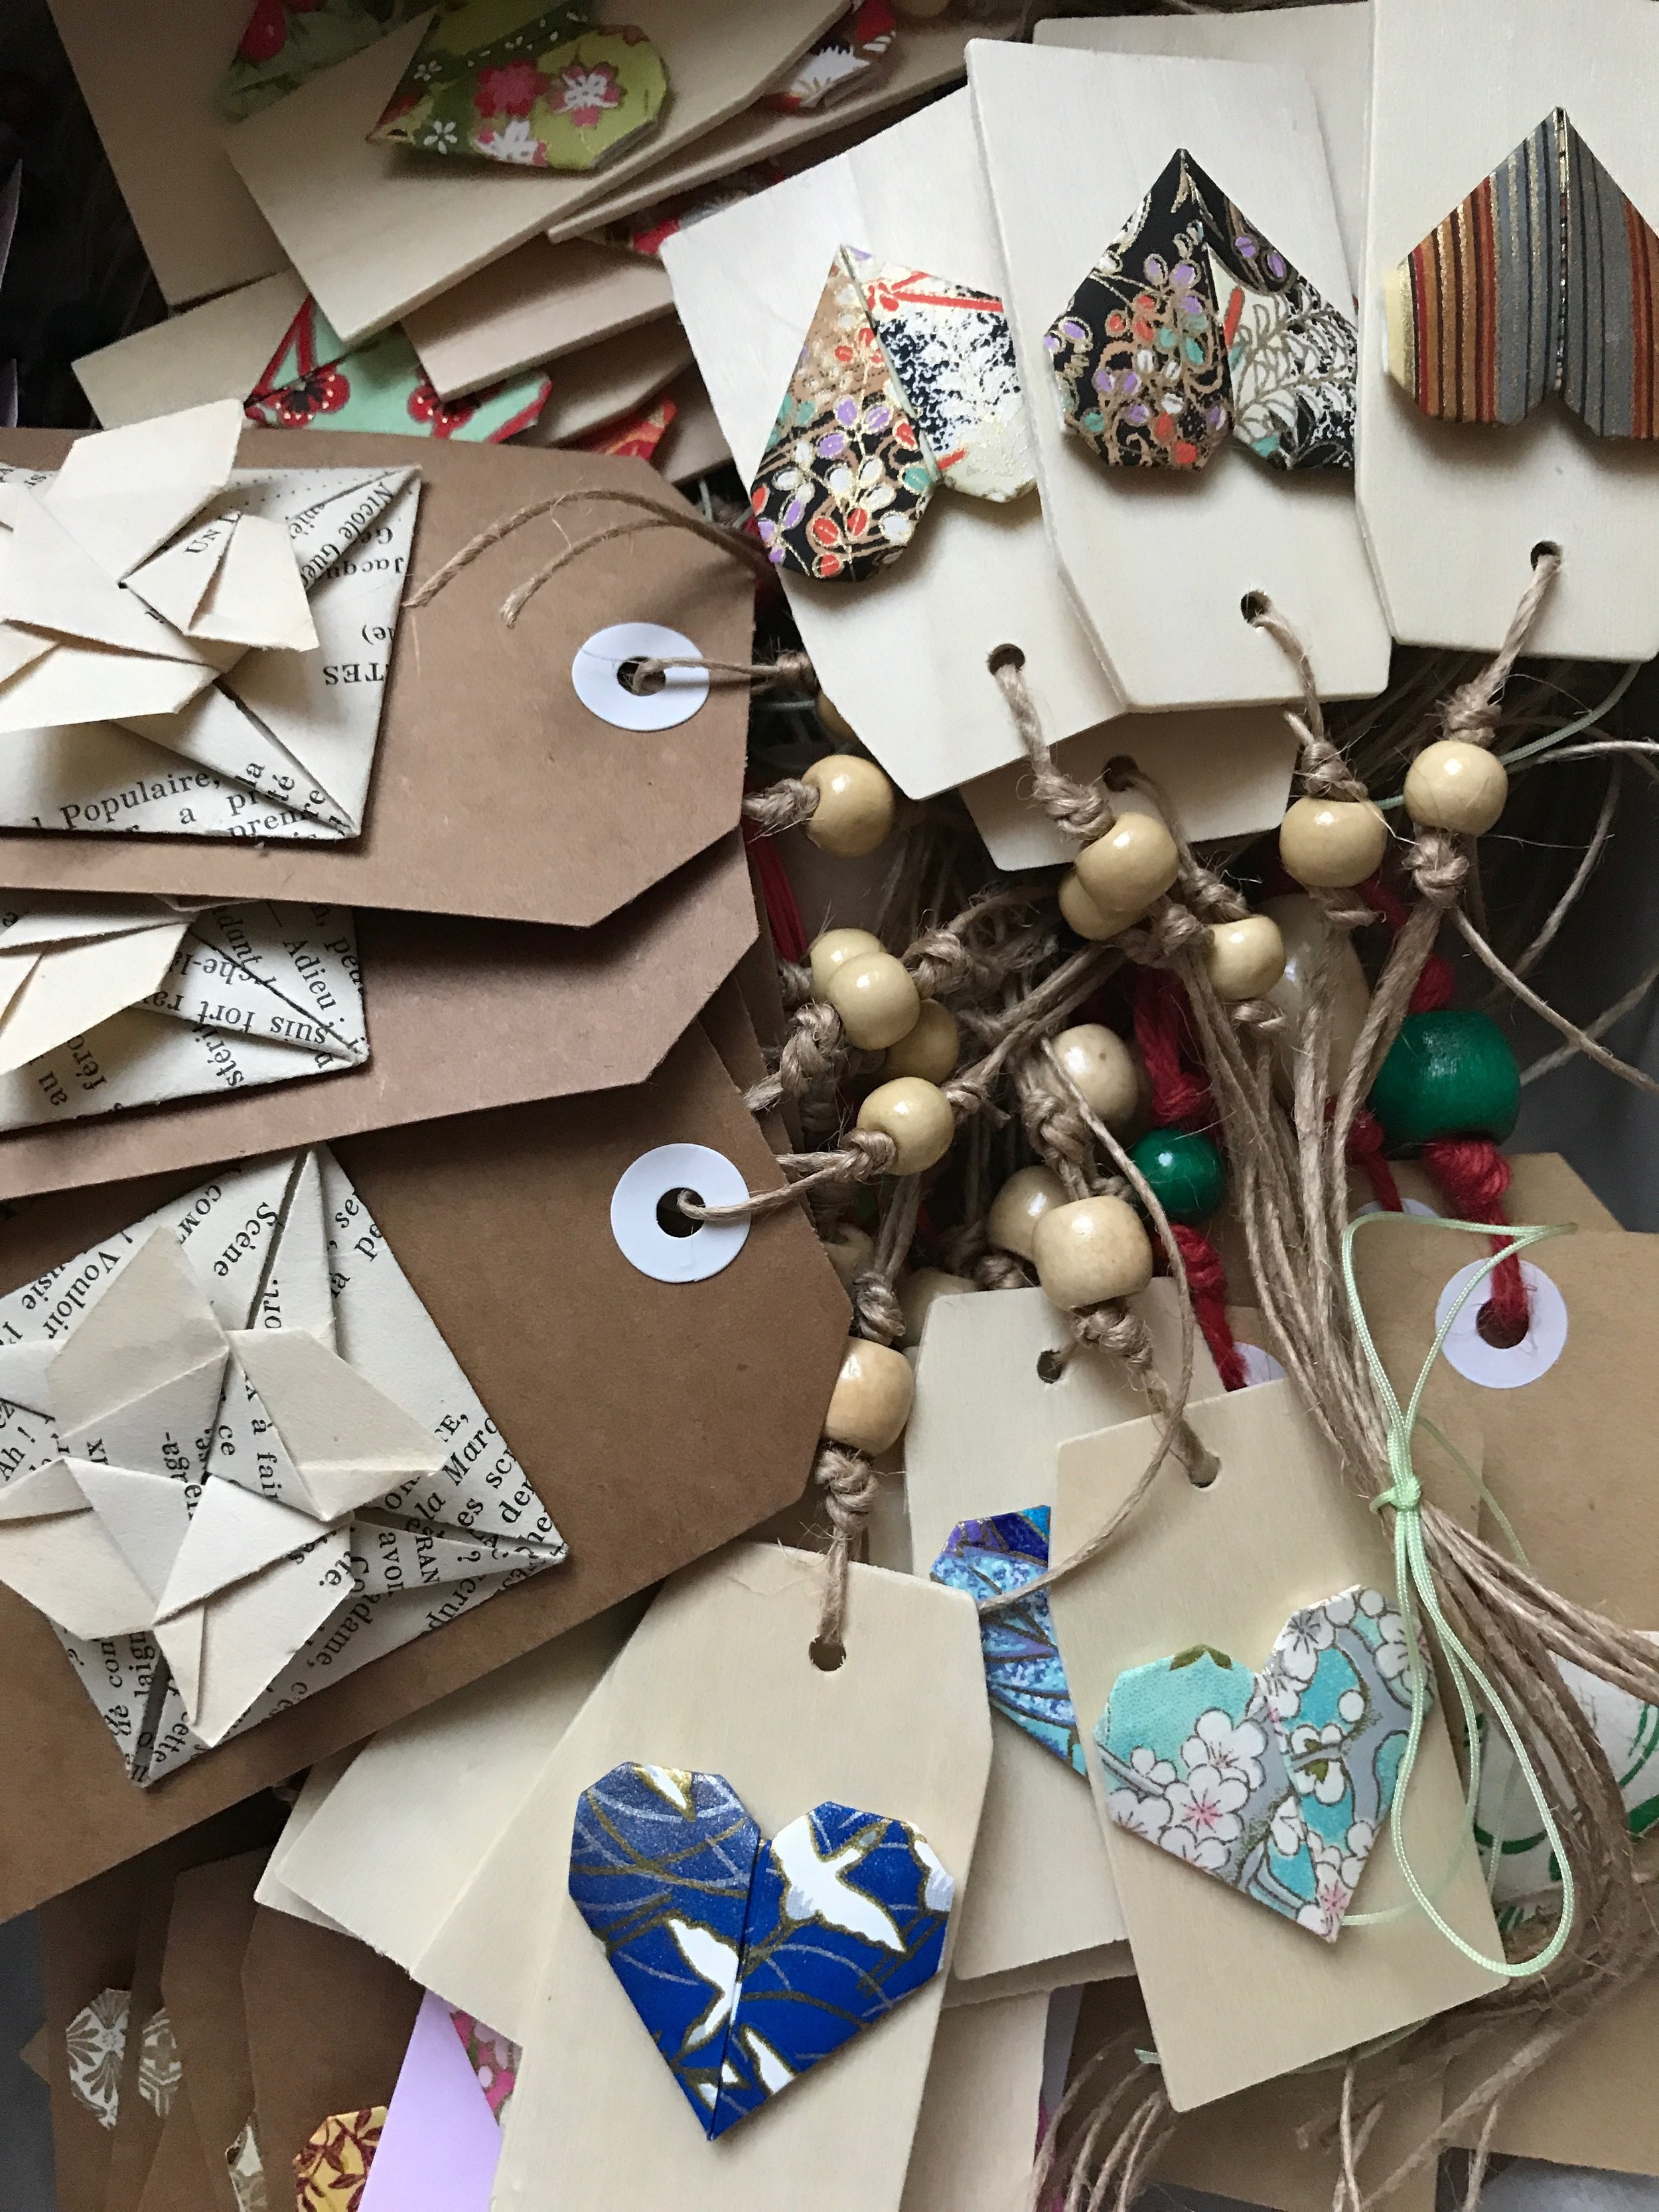 Beautiful gift cards incorporating origami elements and natural and upcycled materials.